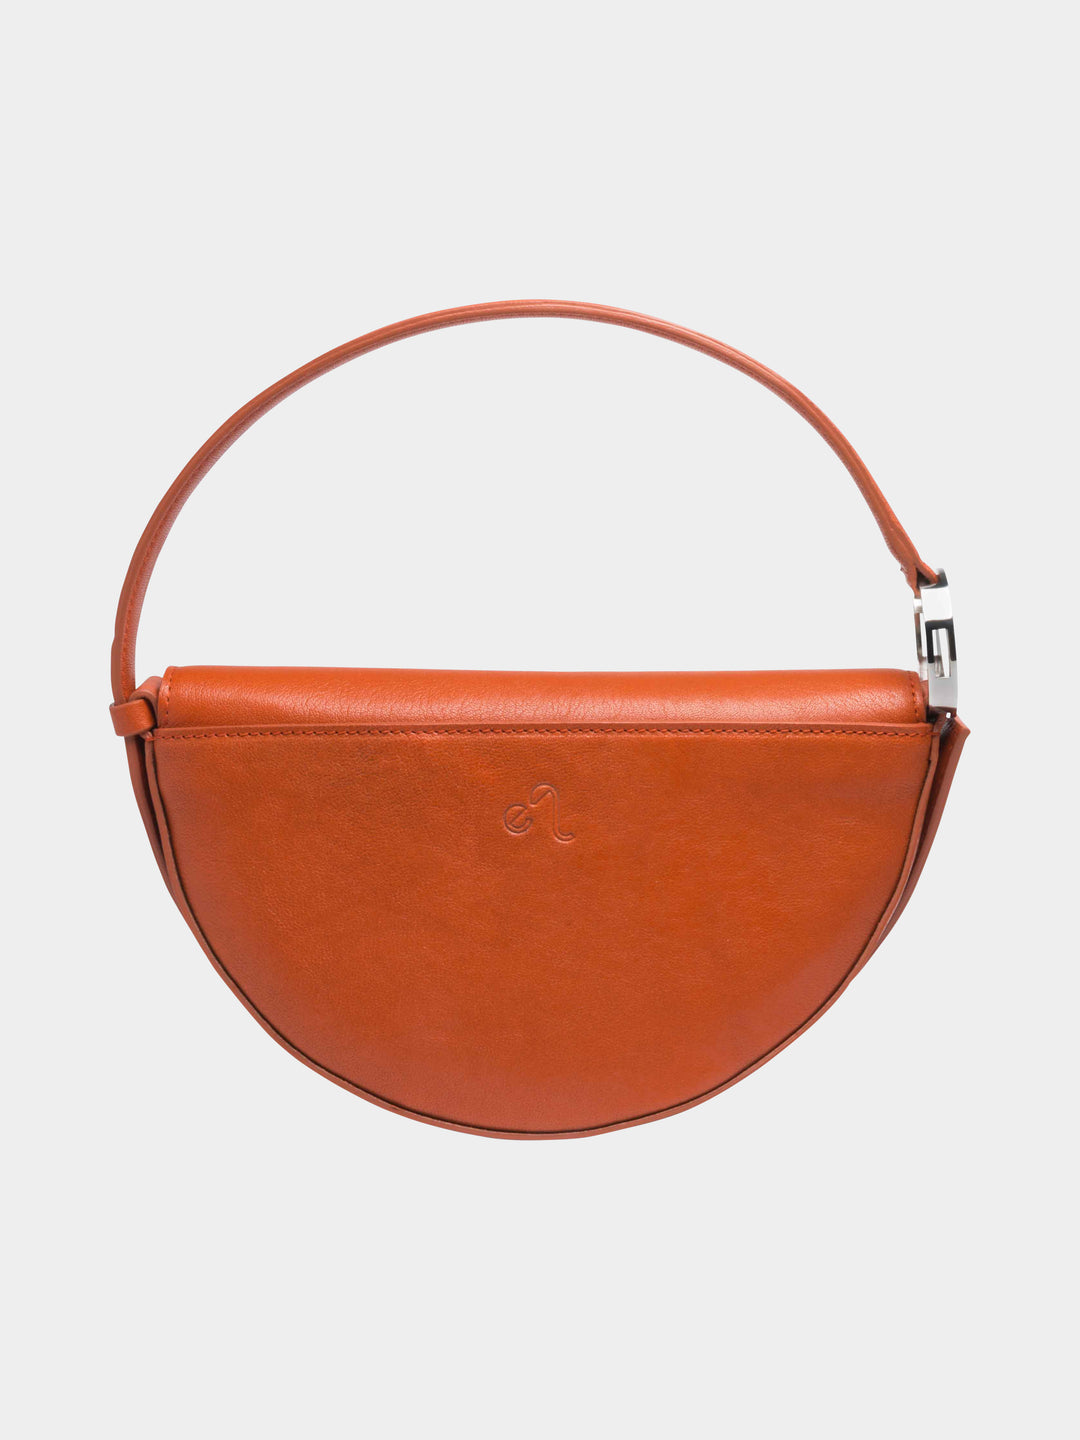 Dooz Leo Céleste leather handbag in color Rust (back view with stamp)